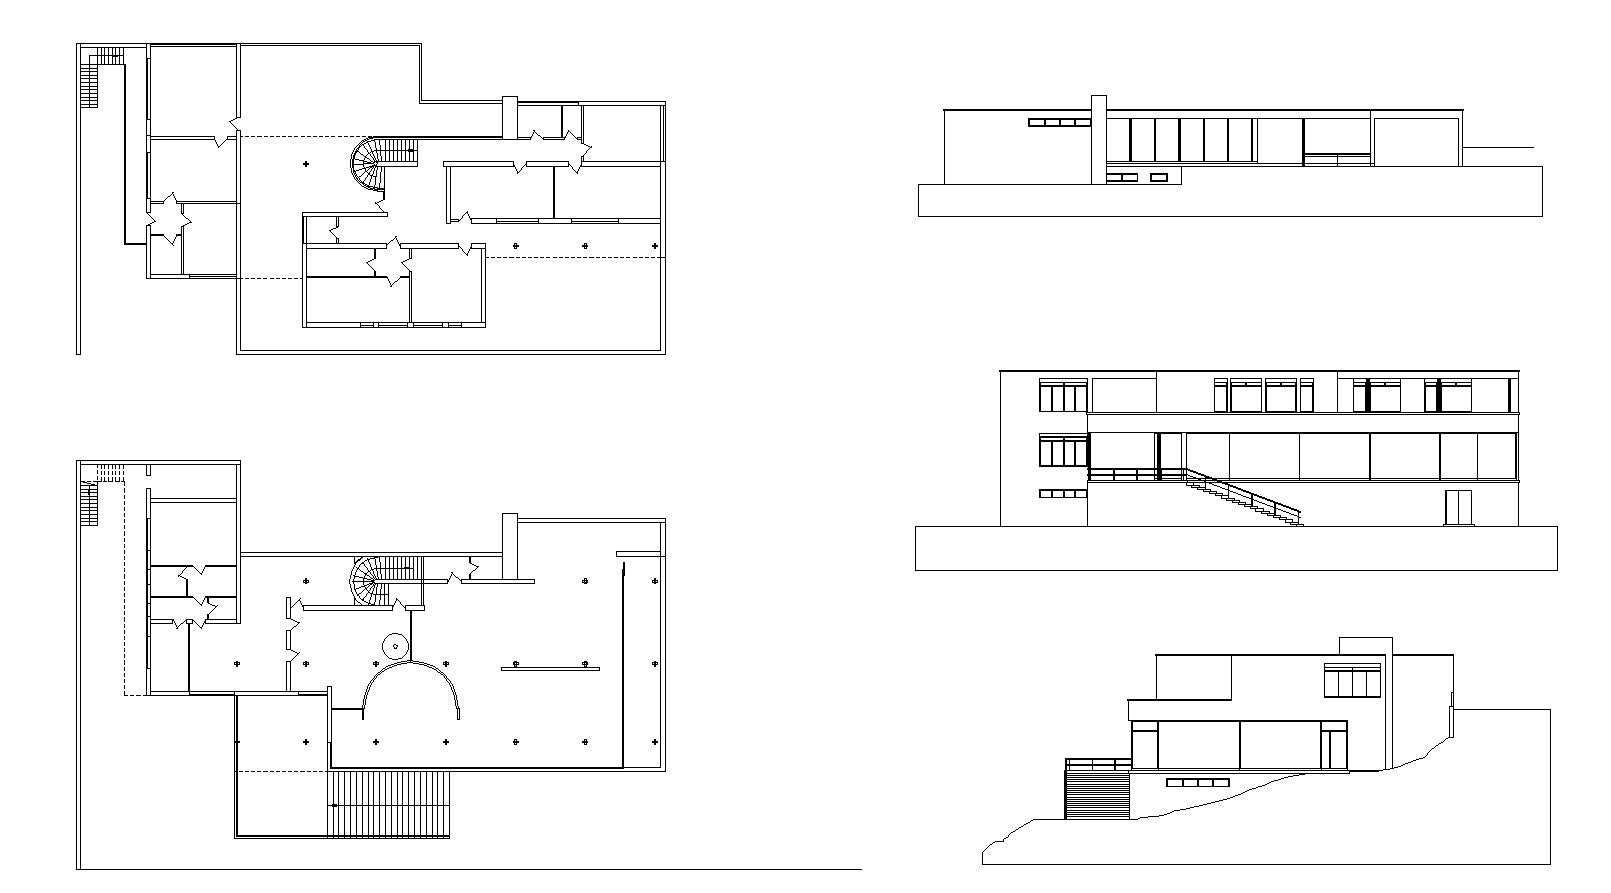 Villa Tugendhat tugendhat villa ludwig mies der rohe cad design free cad